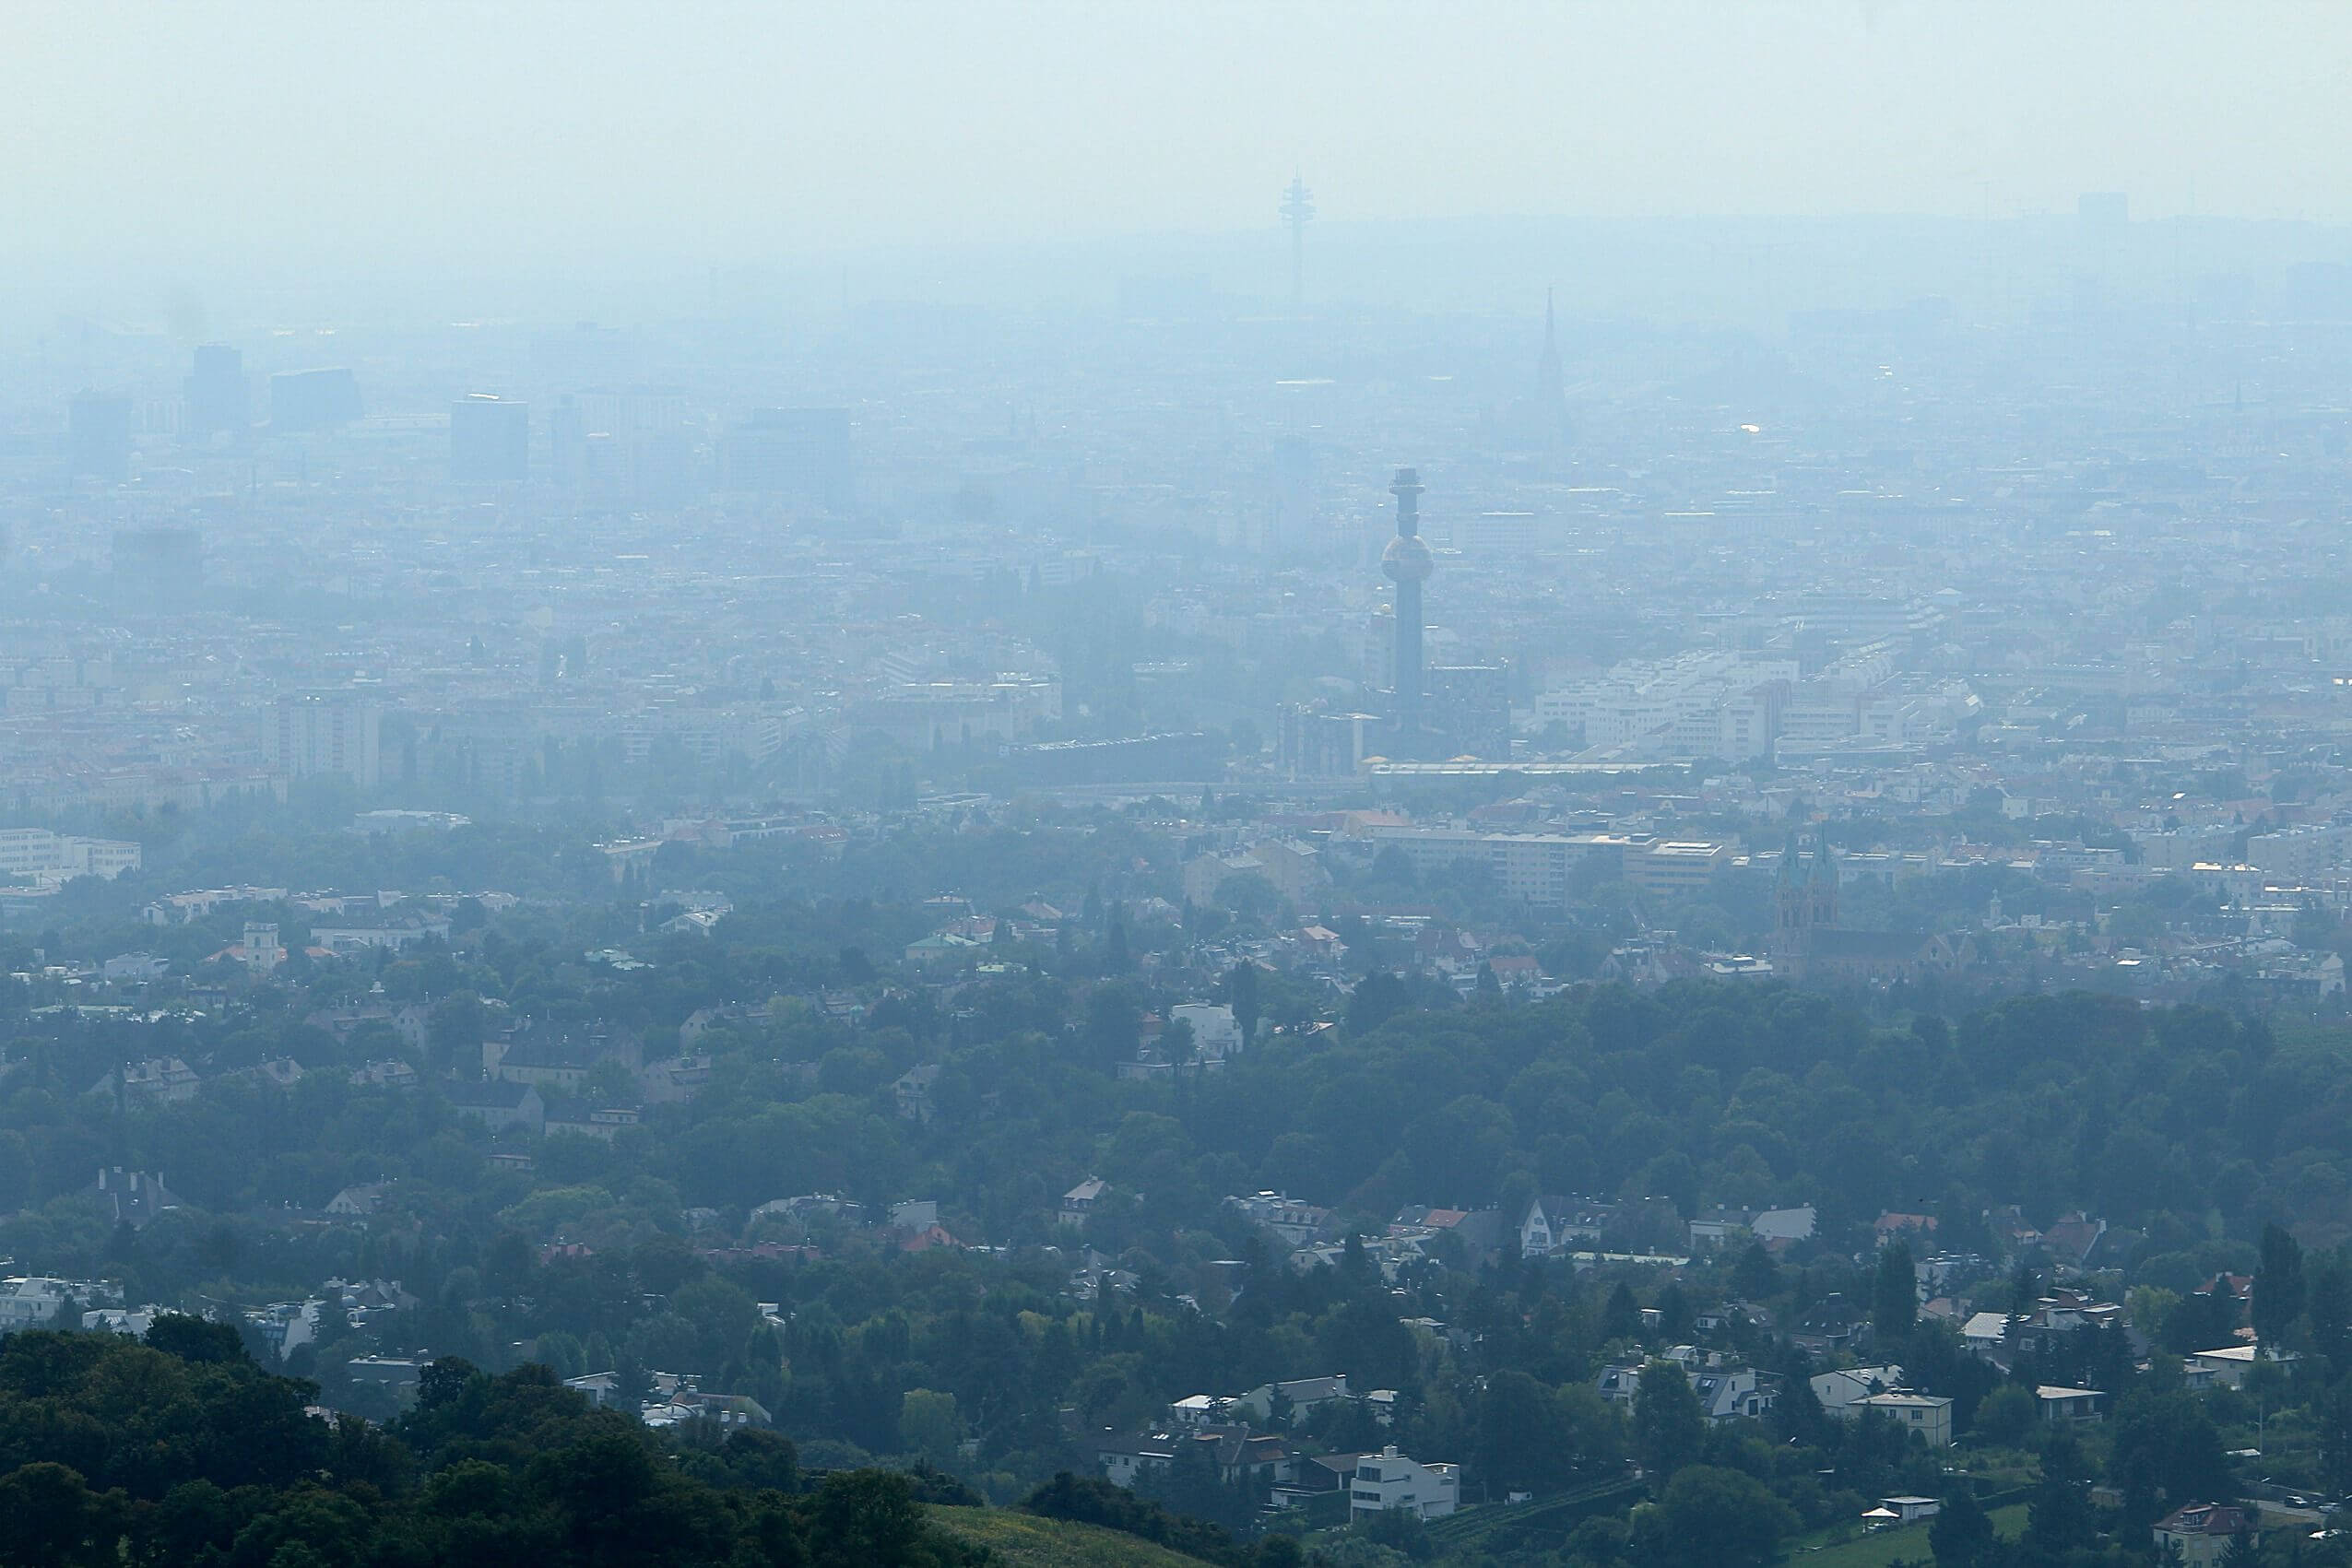 Wien im Smog. By Dguendel - Own work, CC BY 4.0, https://commons.wikimedia.org/w/index.php?curid=53720485